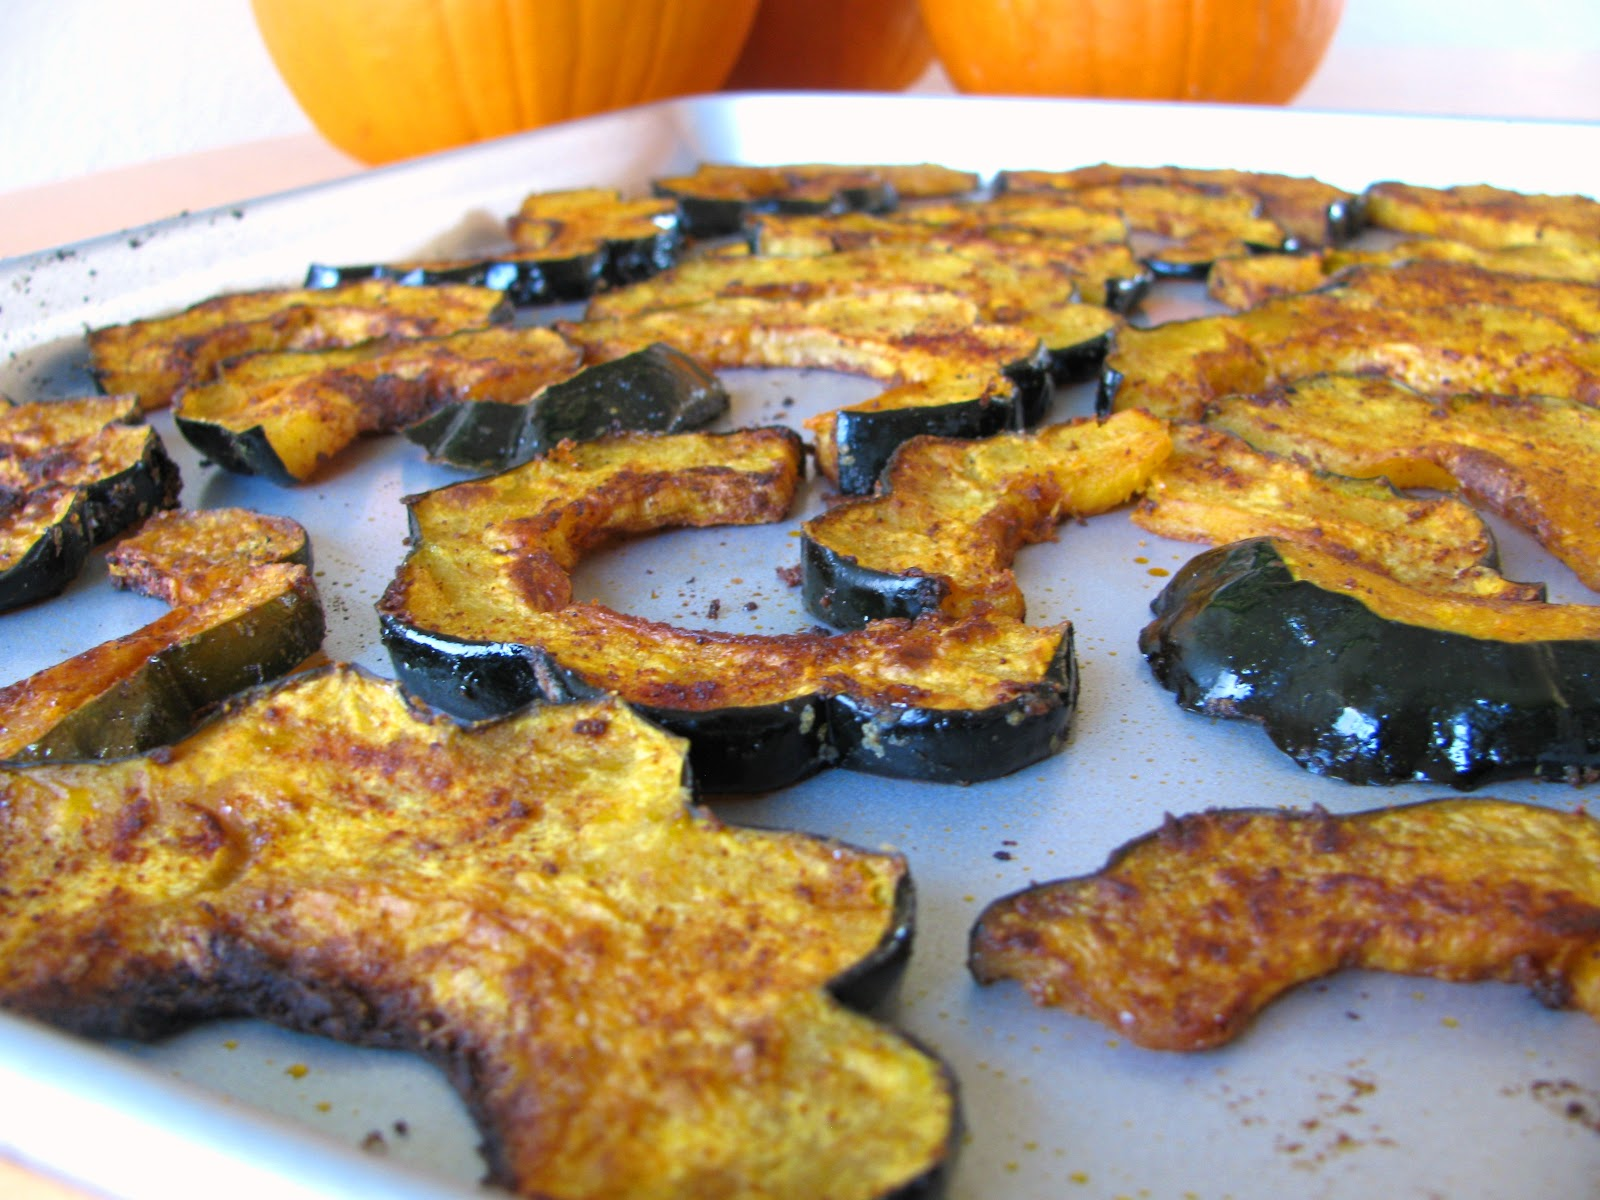 Chena Girl Cooks: Chili-Spiced Roasted Acorn Squash